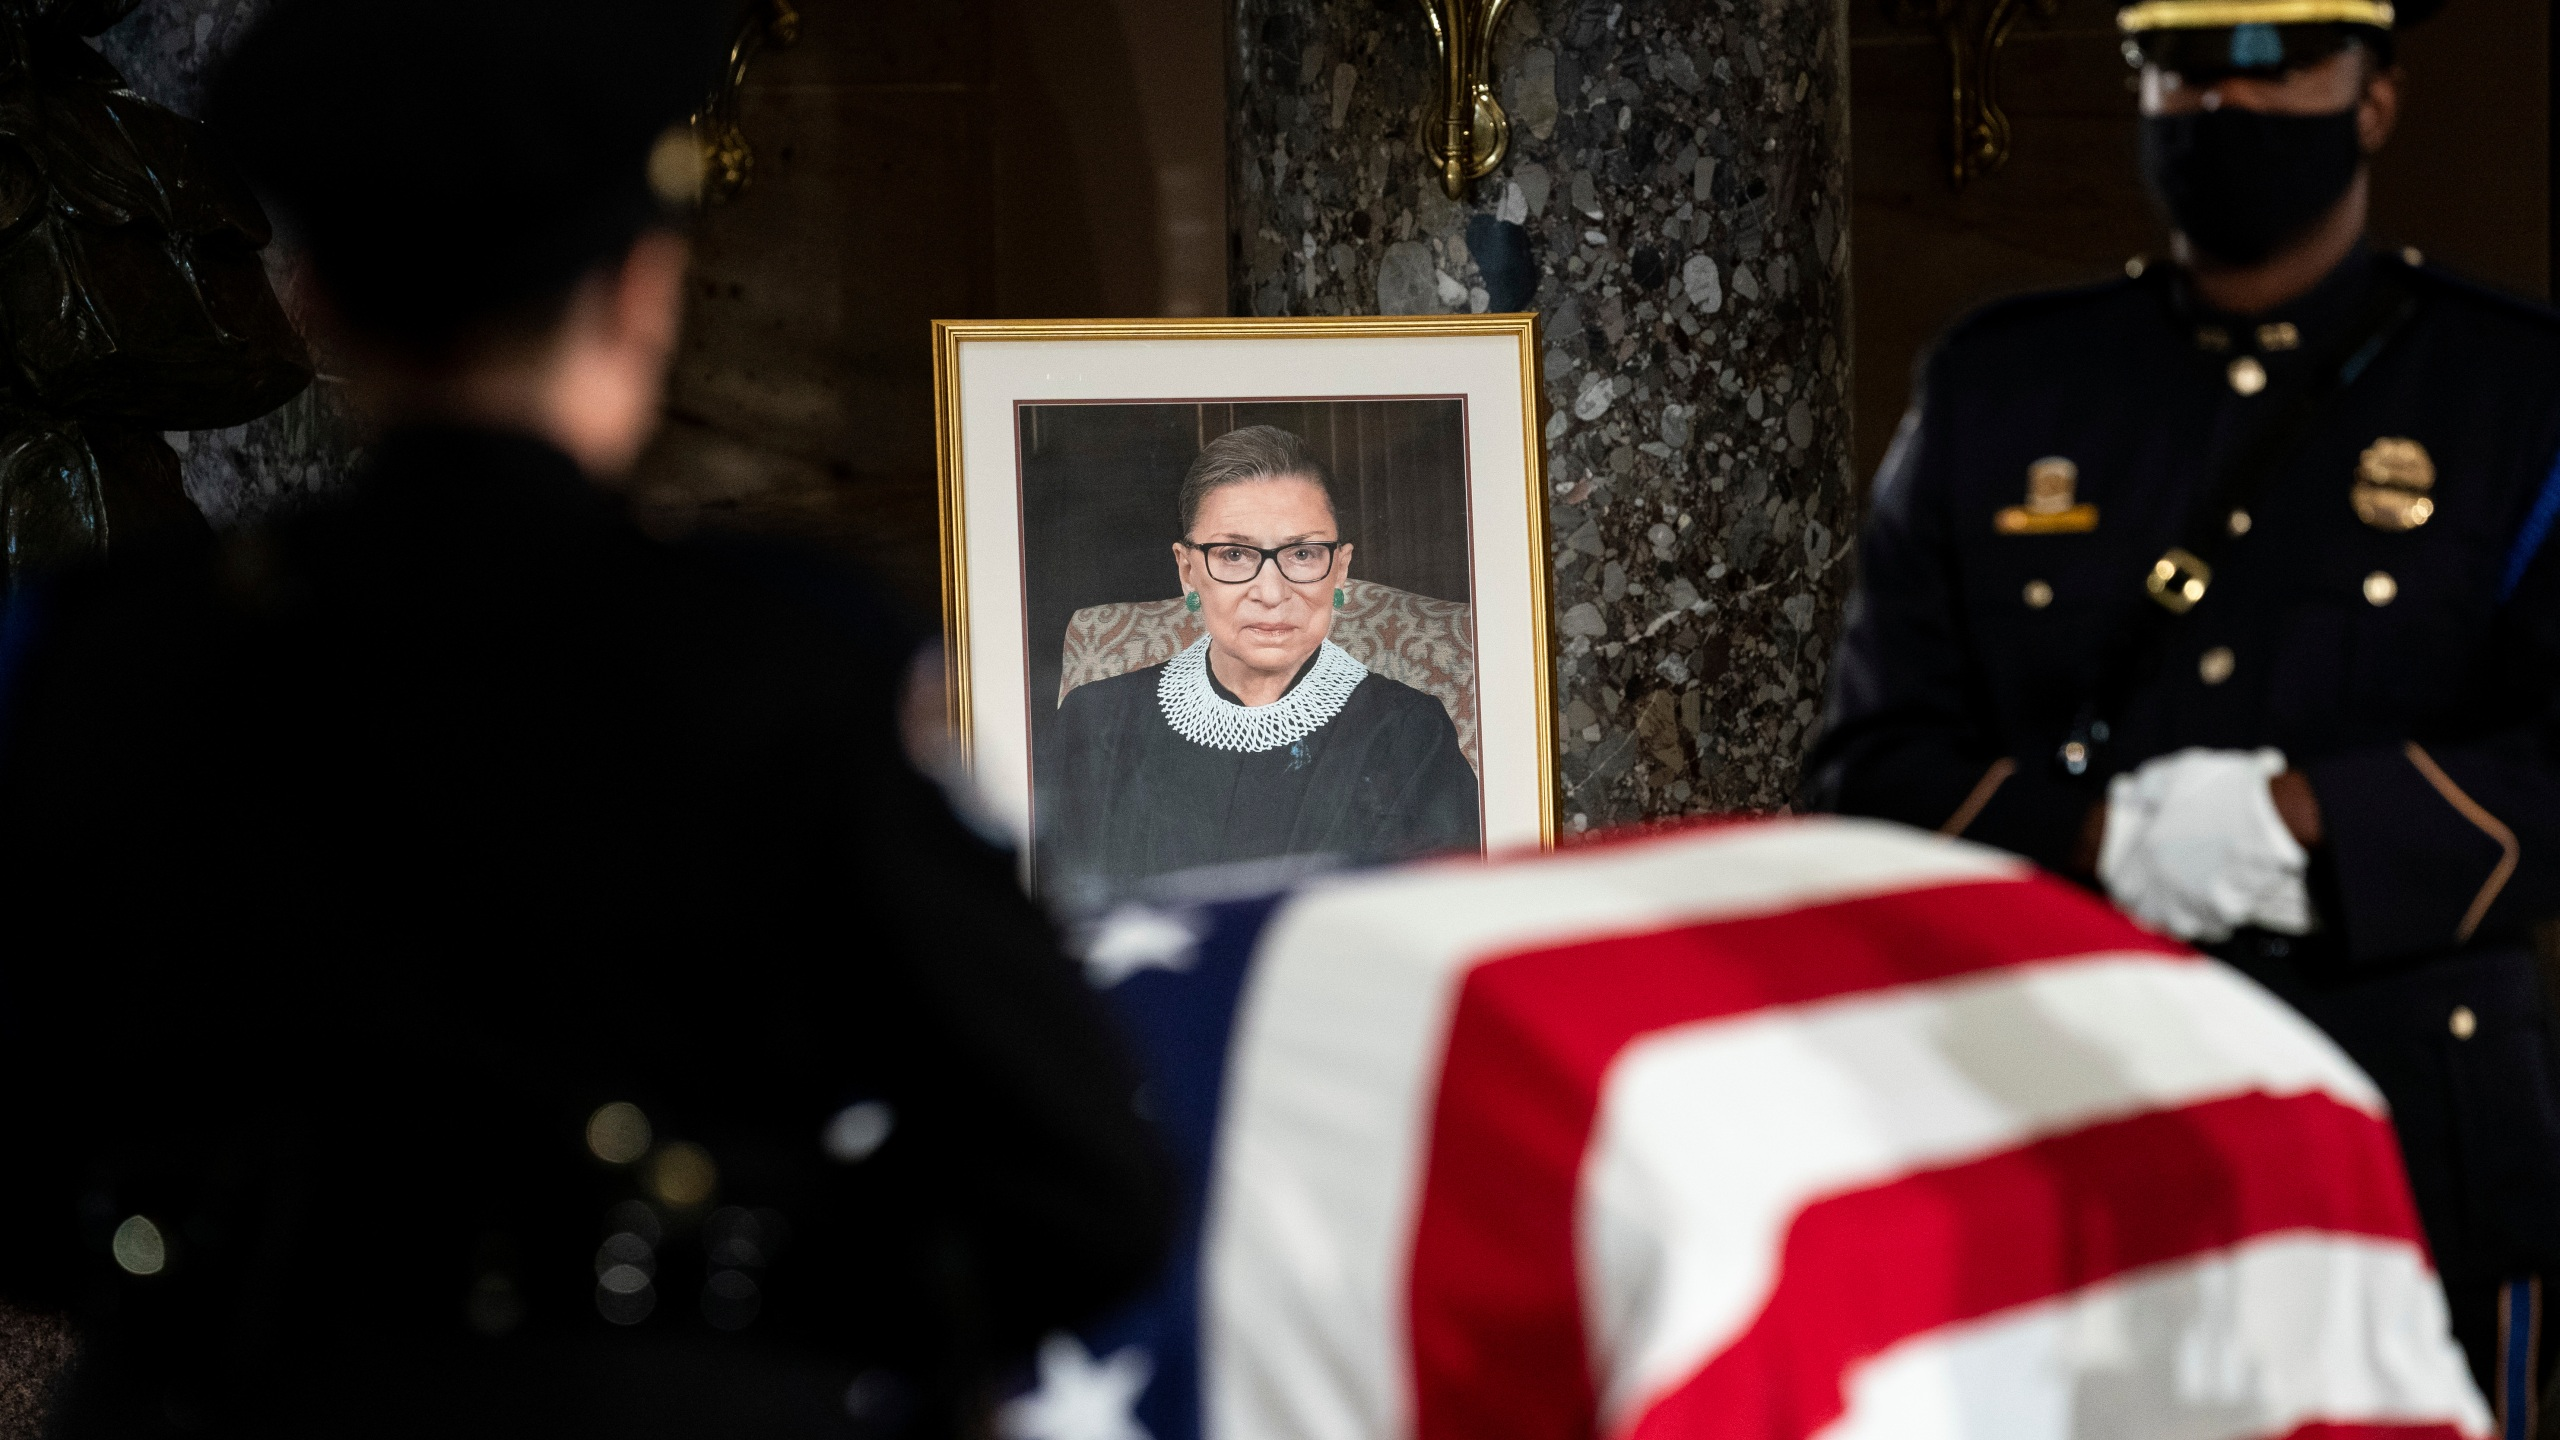 The flag-draped casket of Justice Ruth Bader Ginsburg lies in state in the U.S. Capitol on Friday, Sept. 25, 2020. Ginsburg died at the age of 87 on Sept. 18 and is the first women to lie in state at the Capitol. (Erin Schaff/The New York Times via AP, Pool)